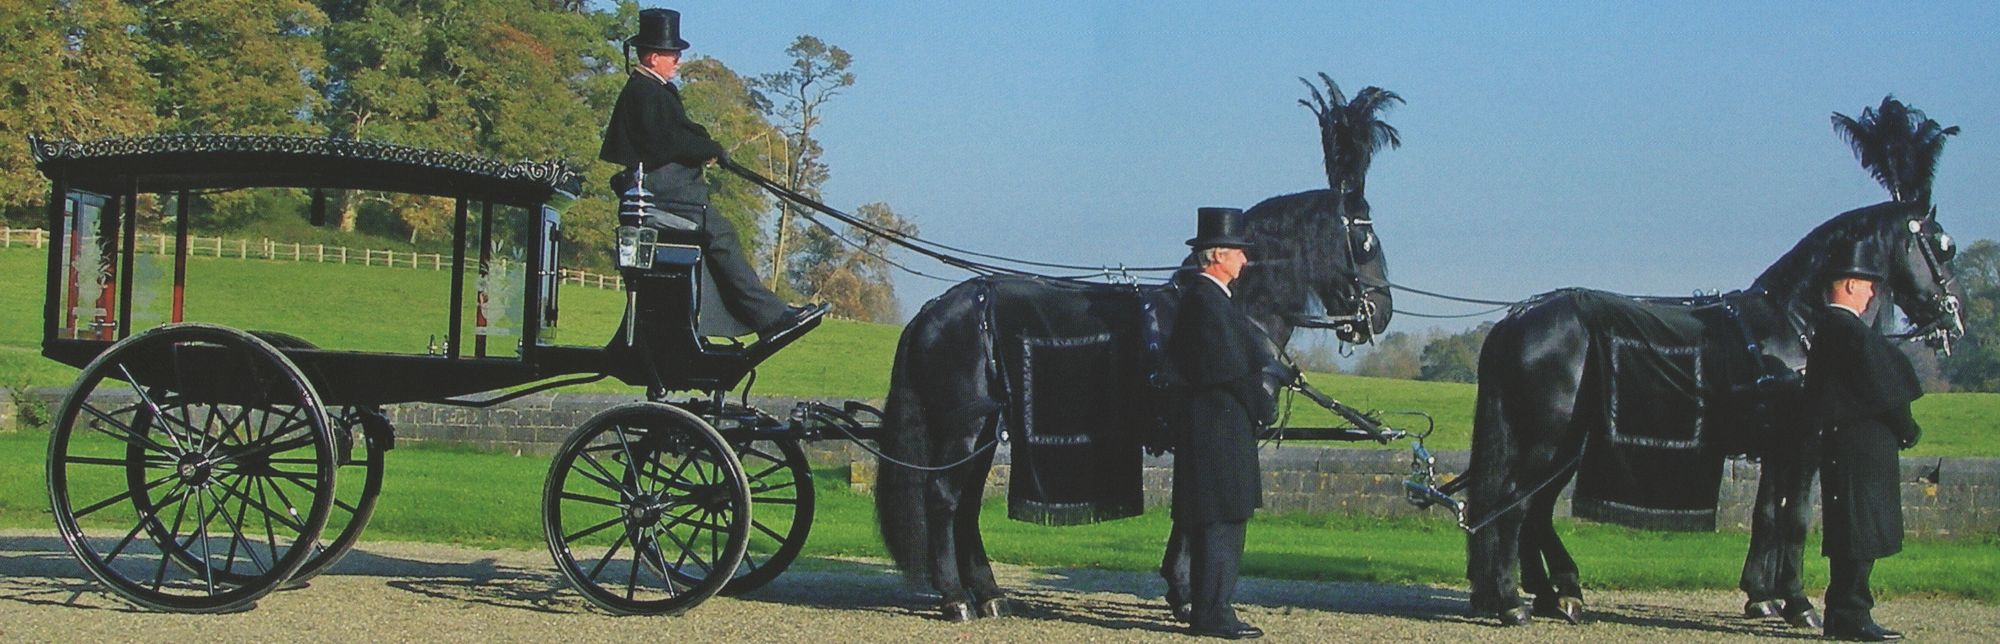 Horse drawn hearse with 4 horses.